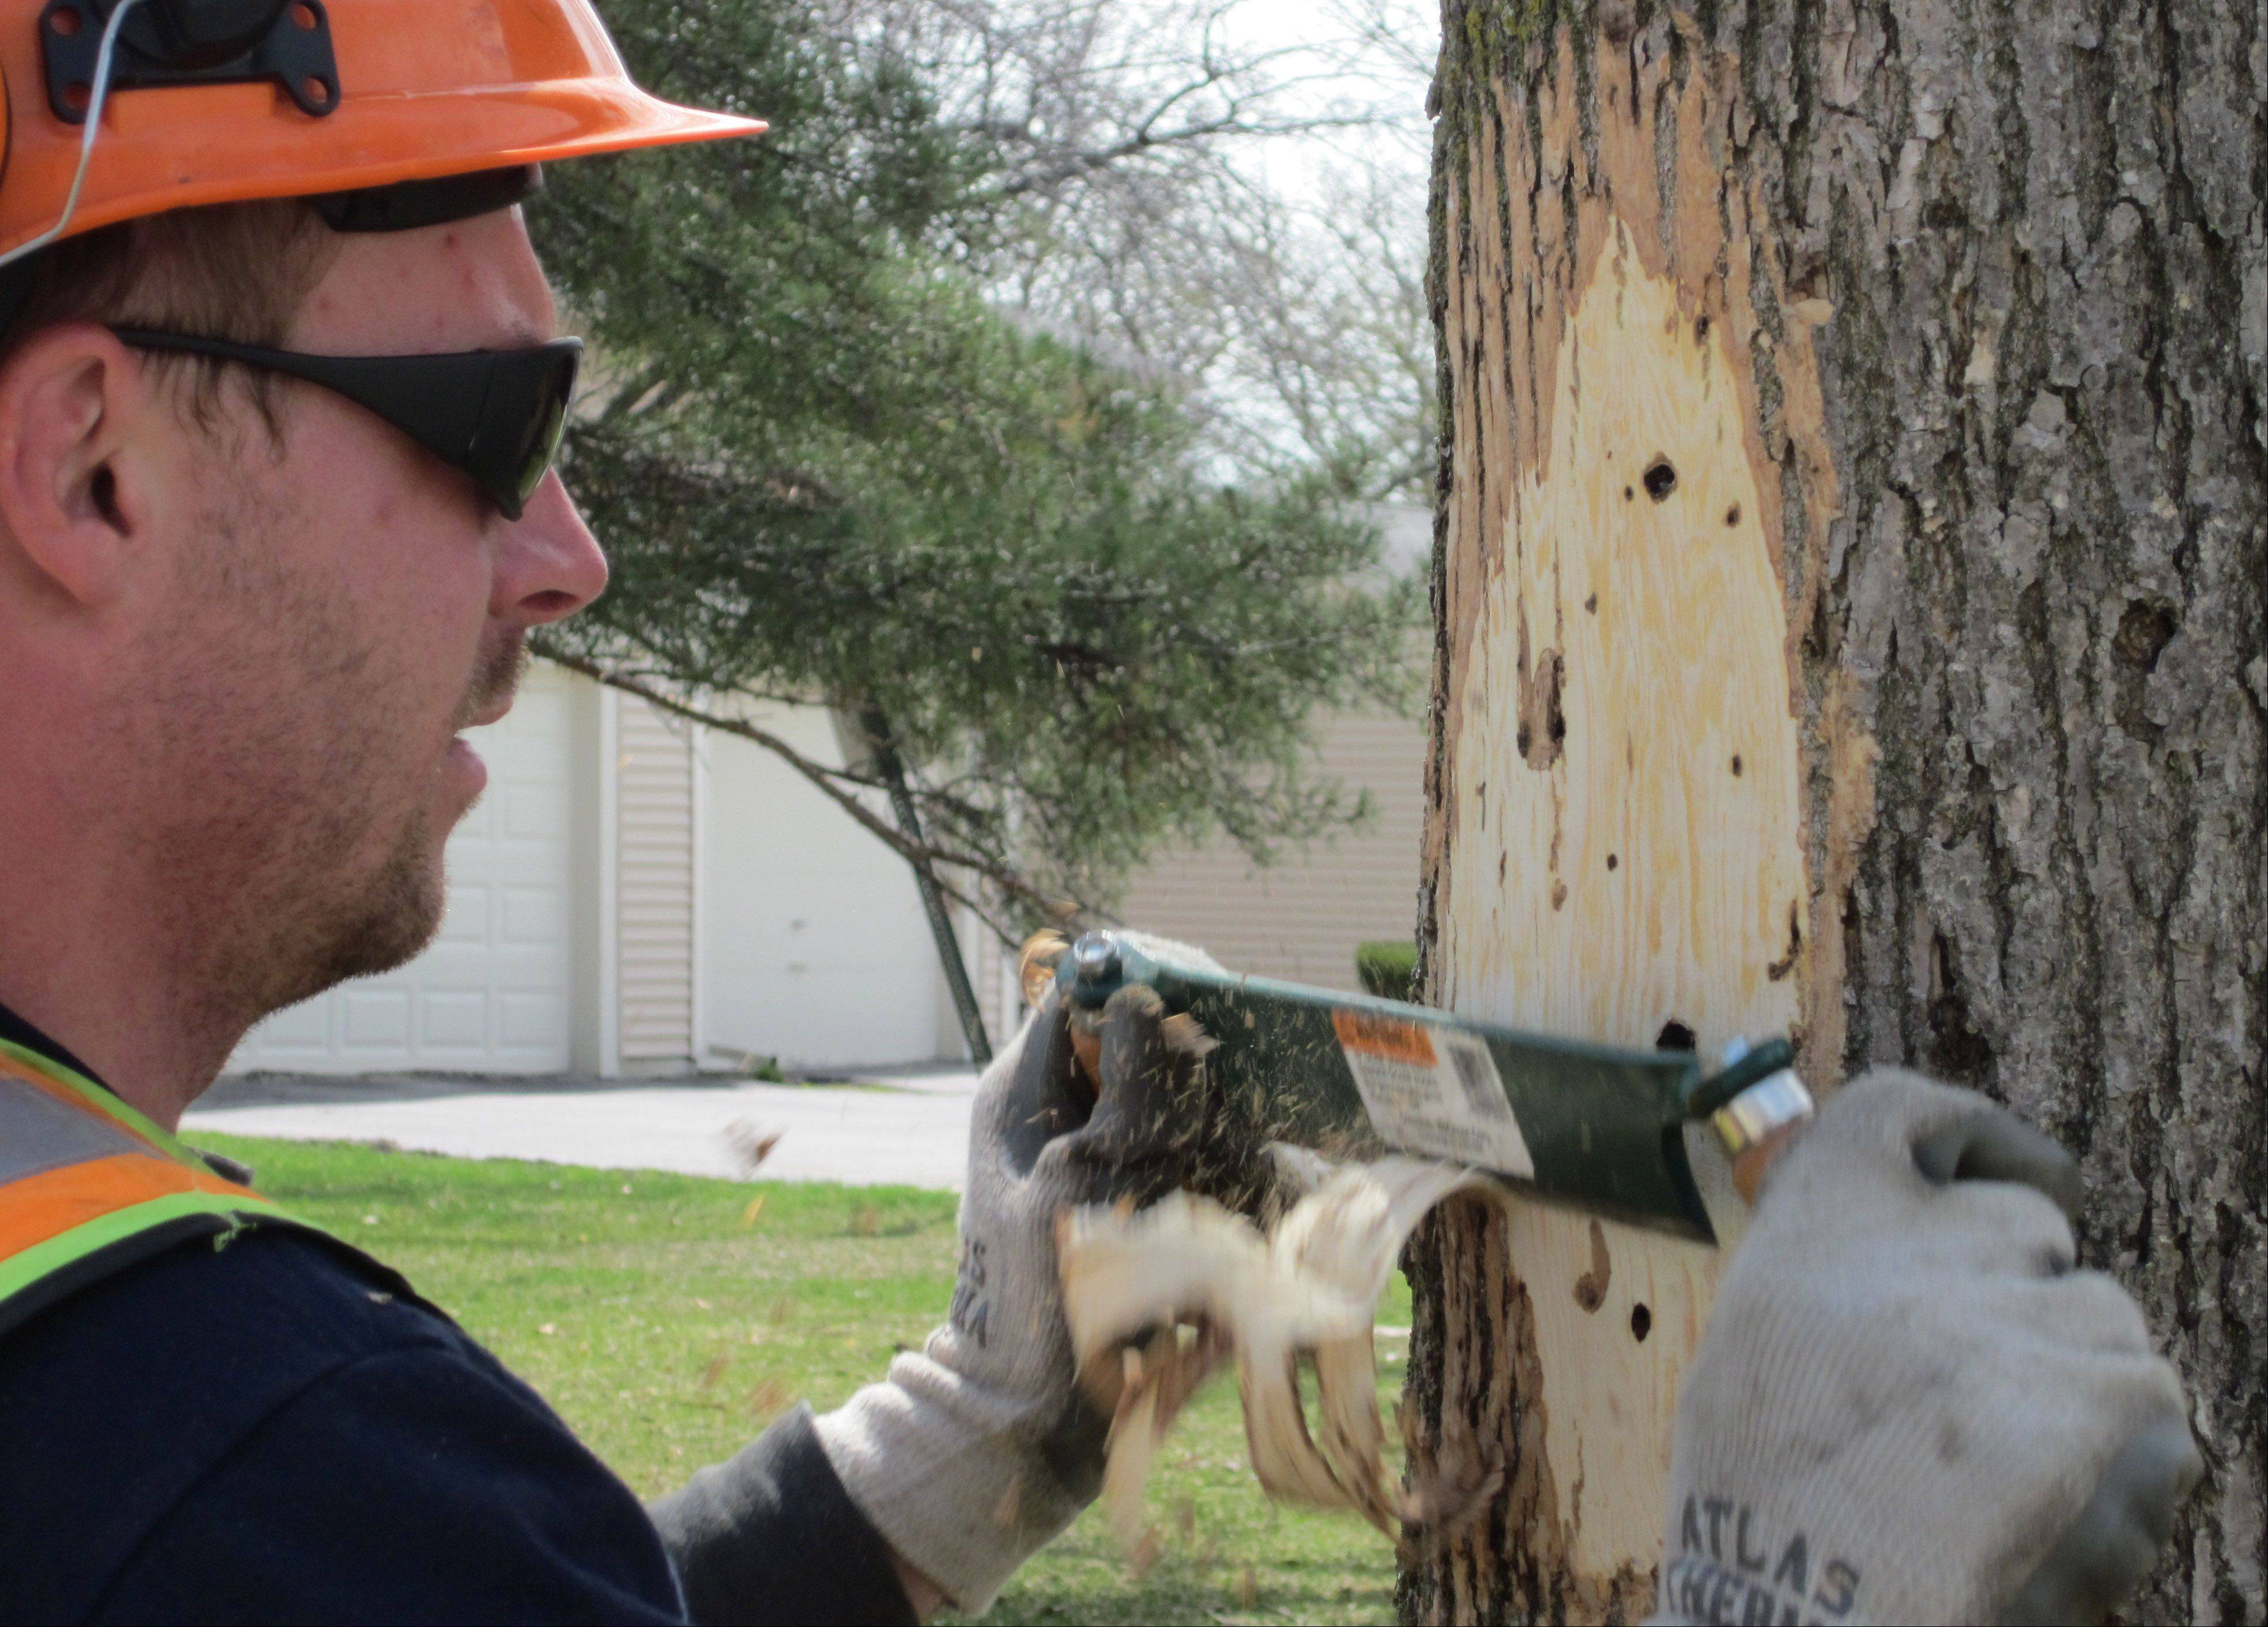 Village and private crews in Vernon Hills last year removed trees infected with the emerald ash borer.